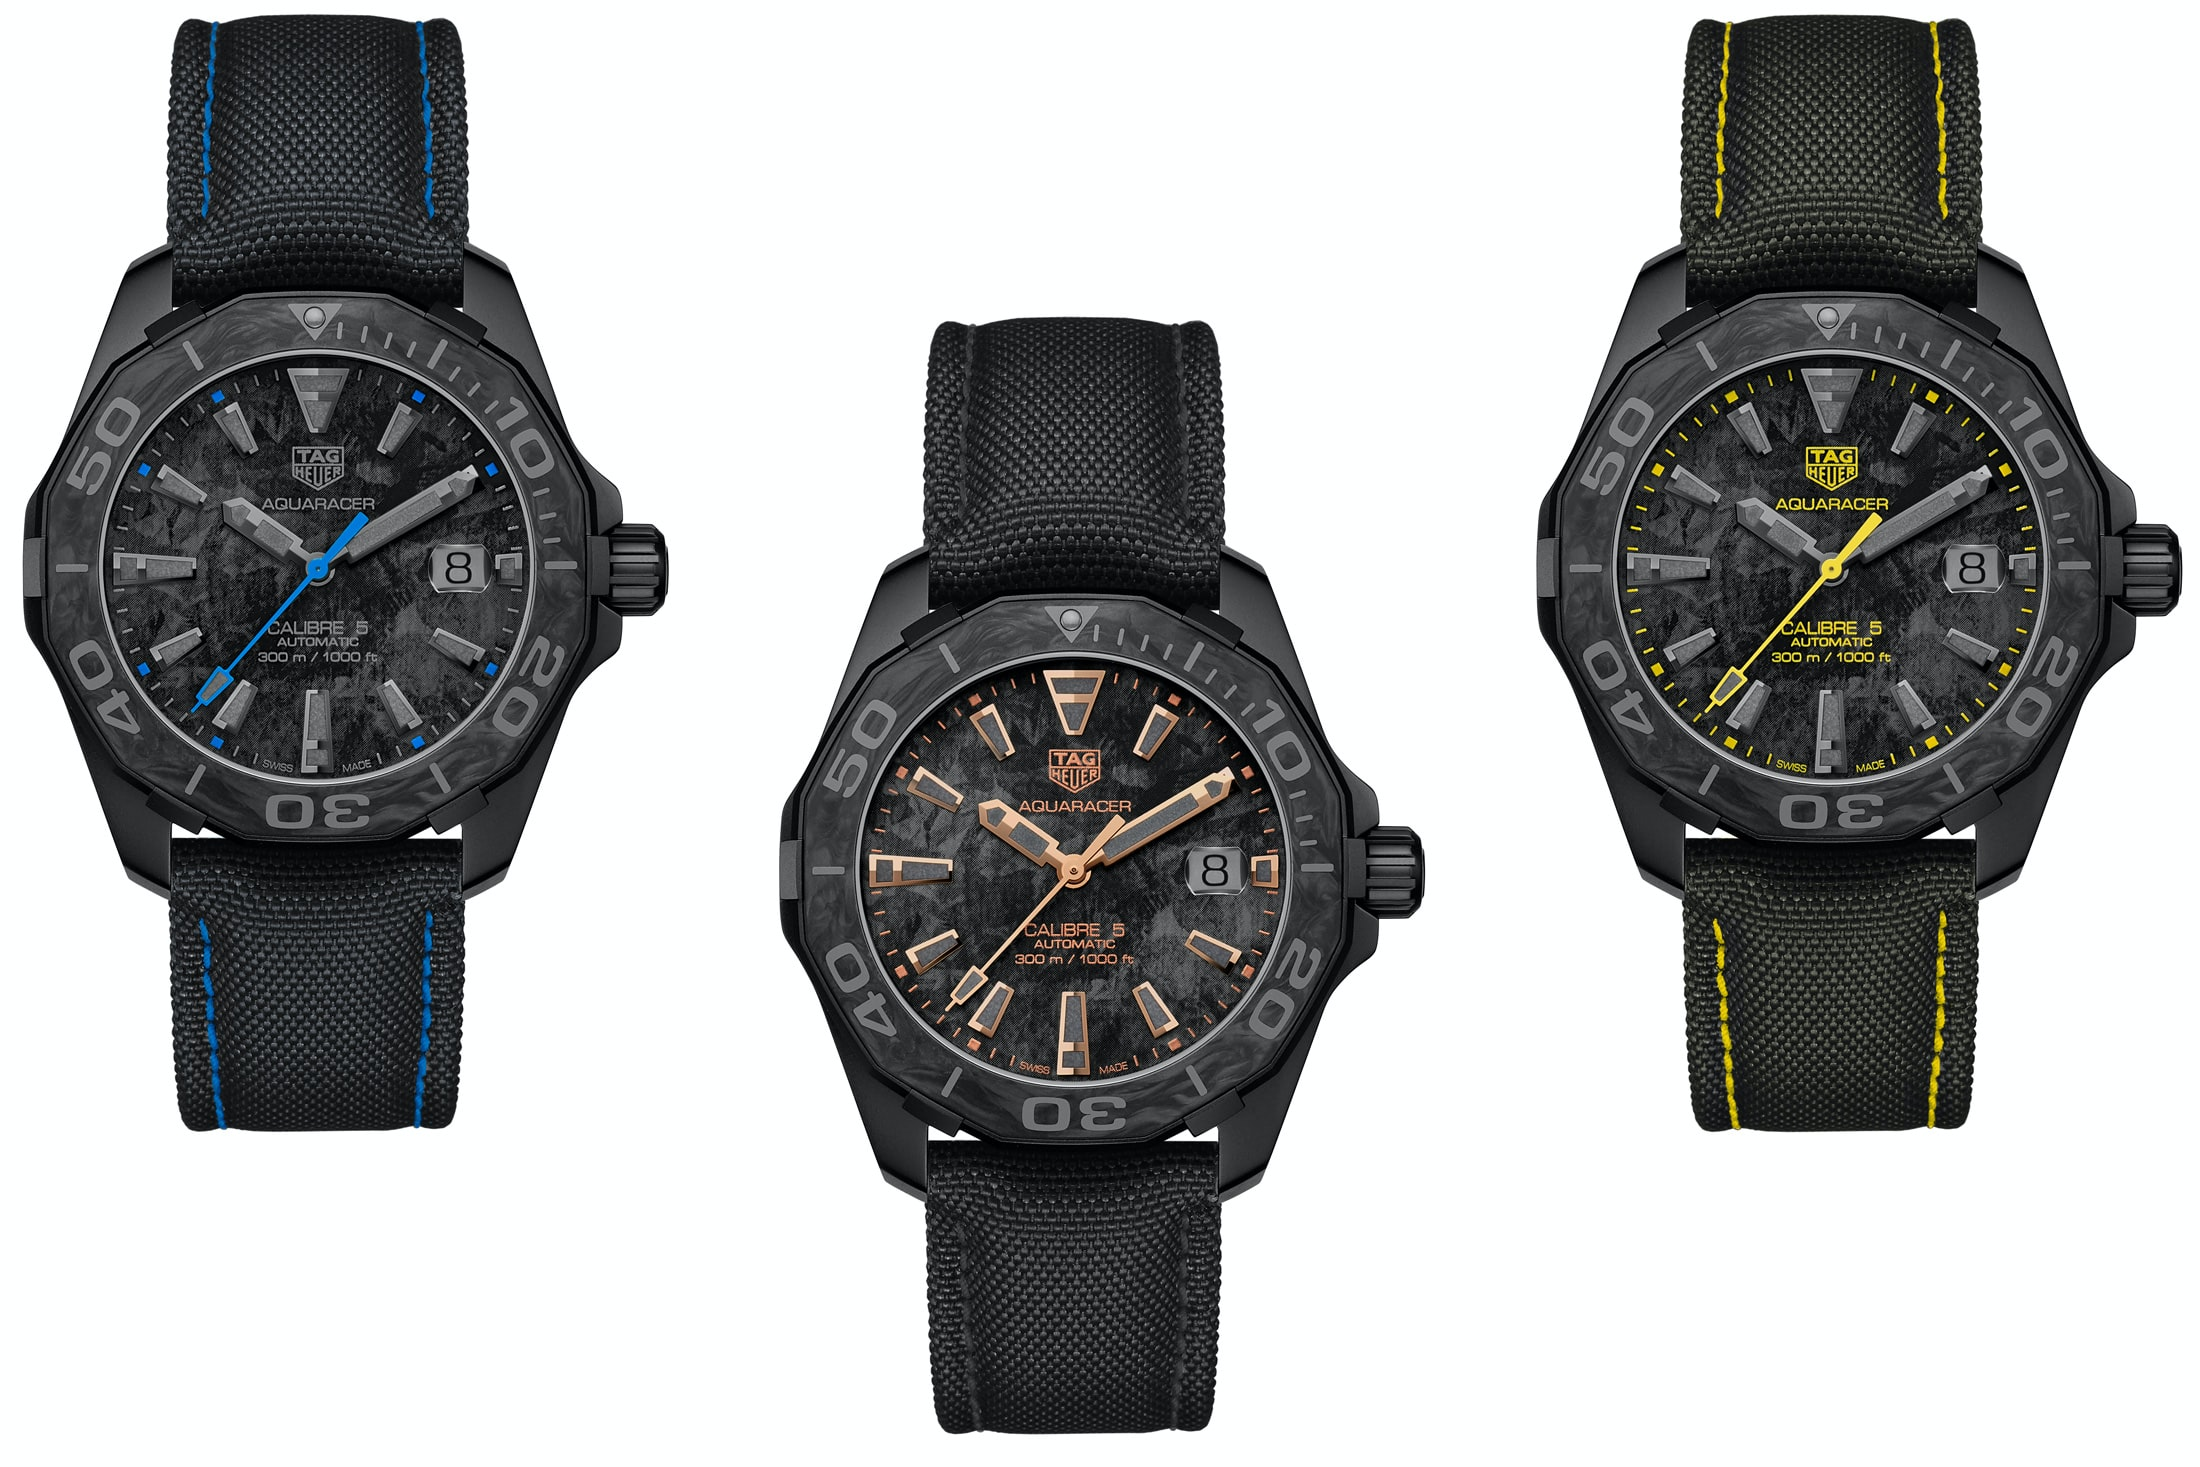 Introducing: The TAG Heuer Carbon Aquaracer tag 2